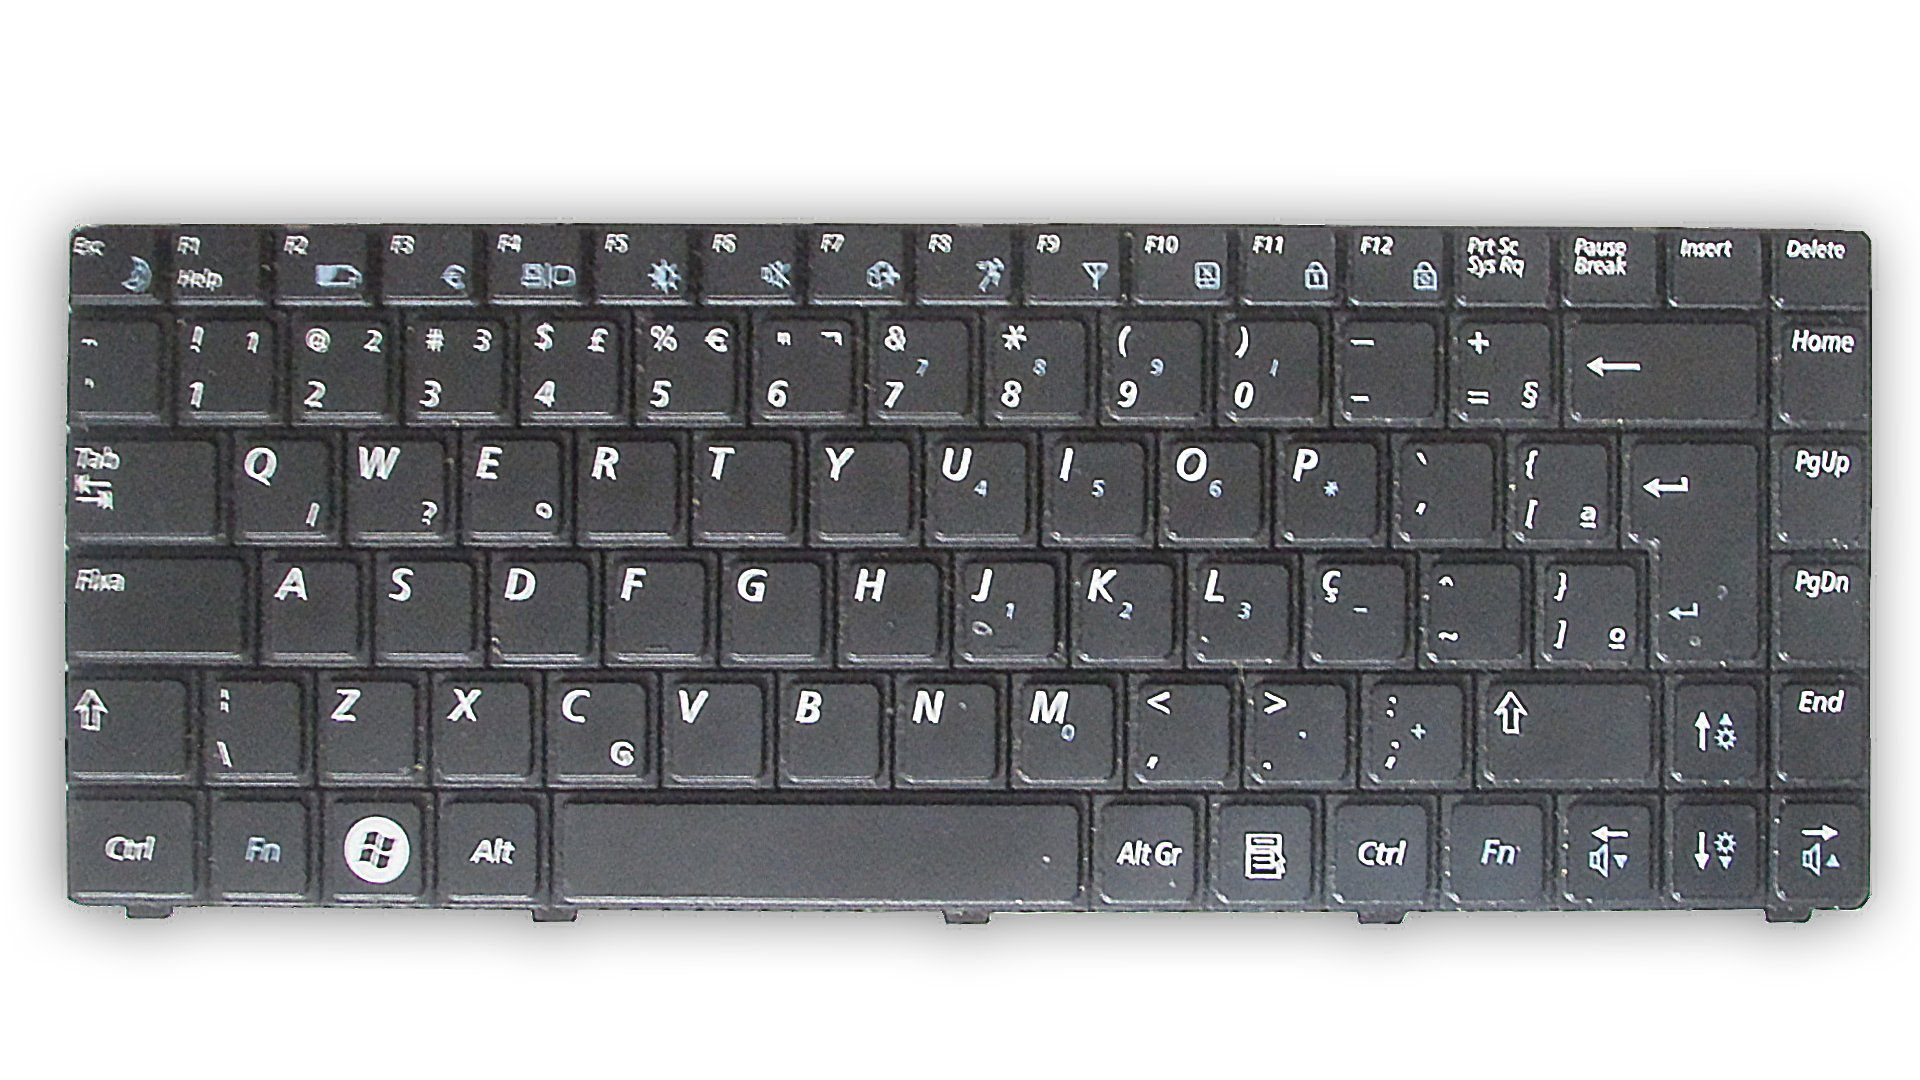 Teclado P/ Notebook Hp DM4 1000 597911-001 (Semi Novo)